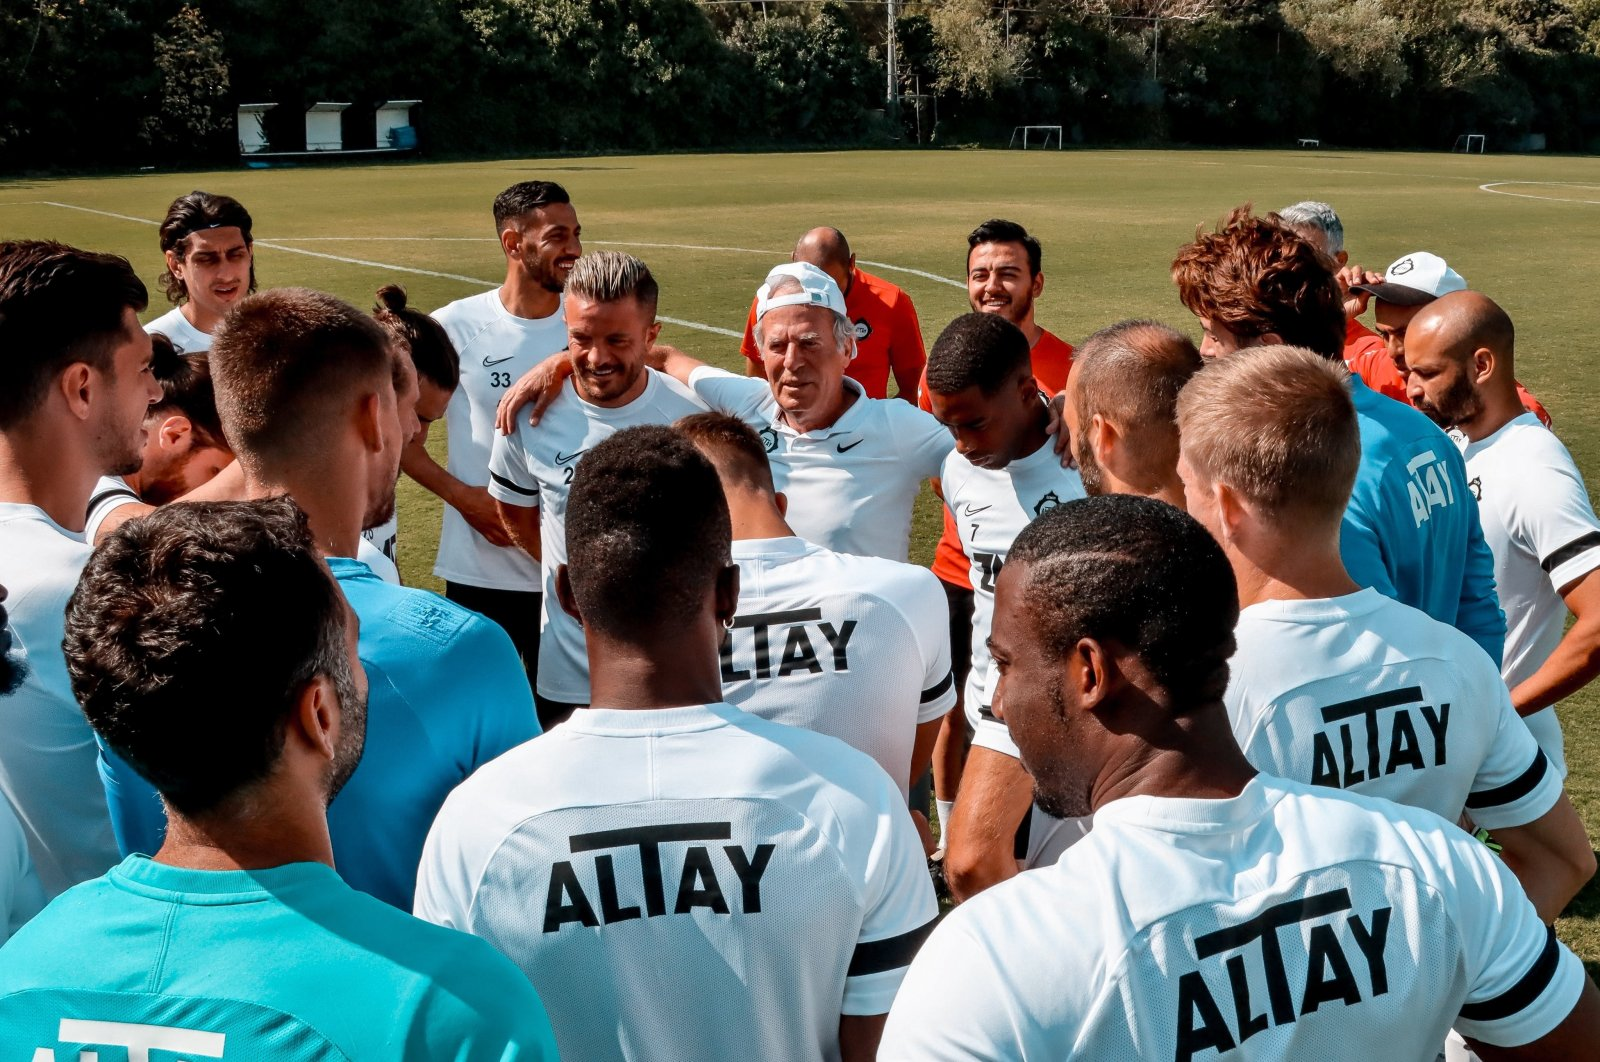 Altay coach and players during a training session ahead of Friday's Izmir derby against Göztepe, Izmir, western Turkey, Sept. 15, 2021. (IHA Photo)